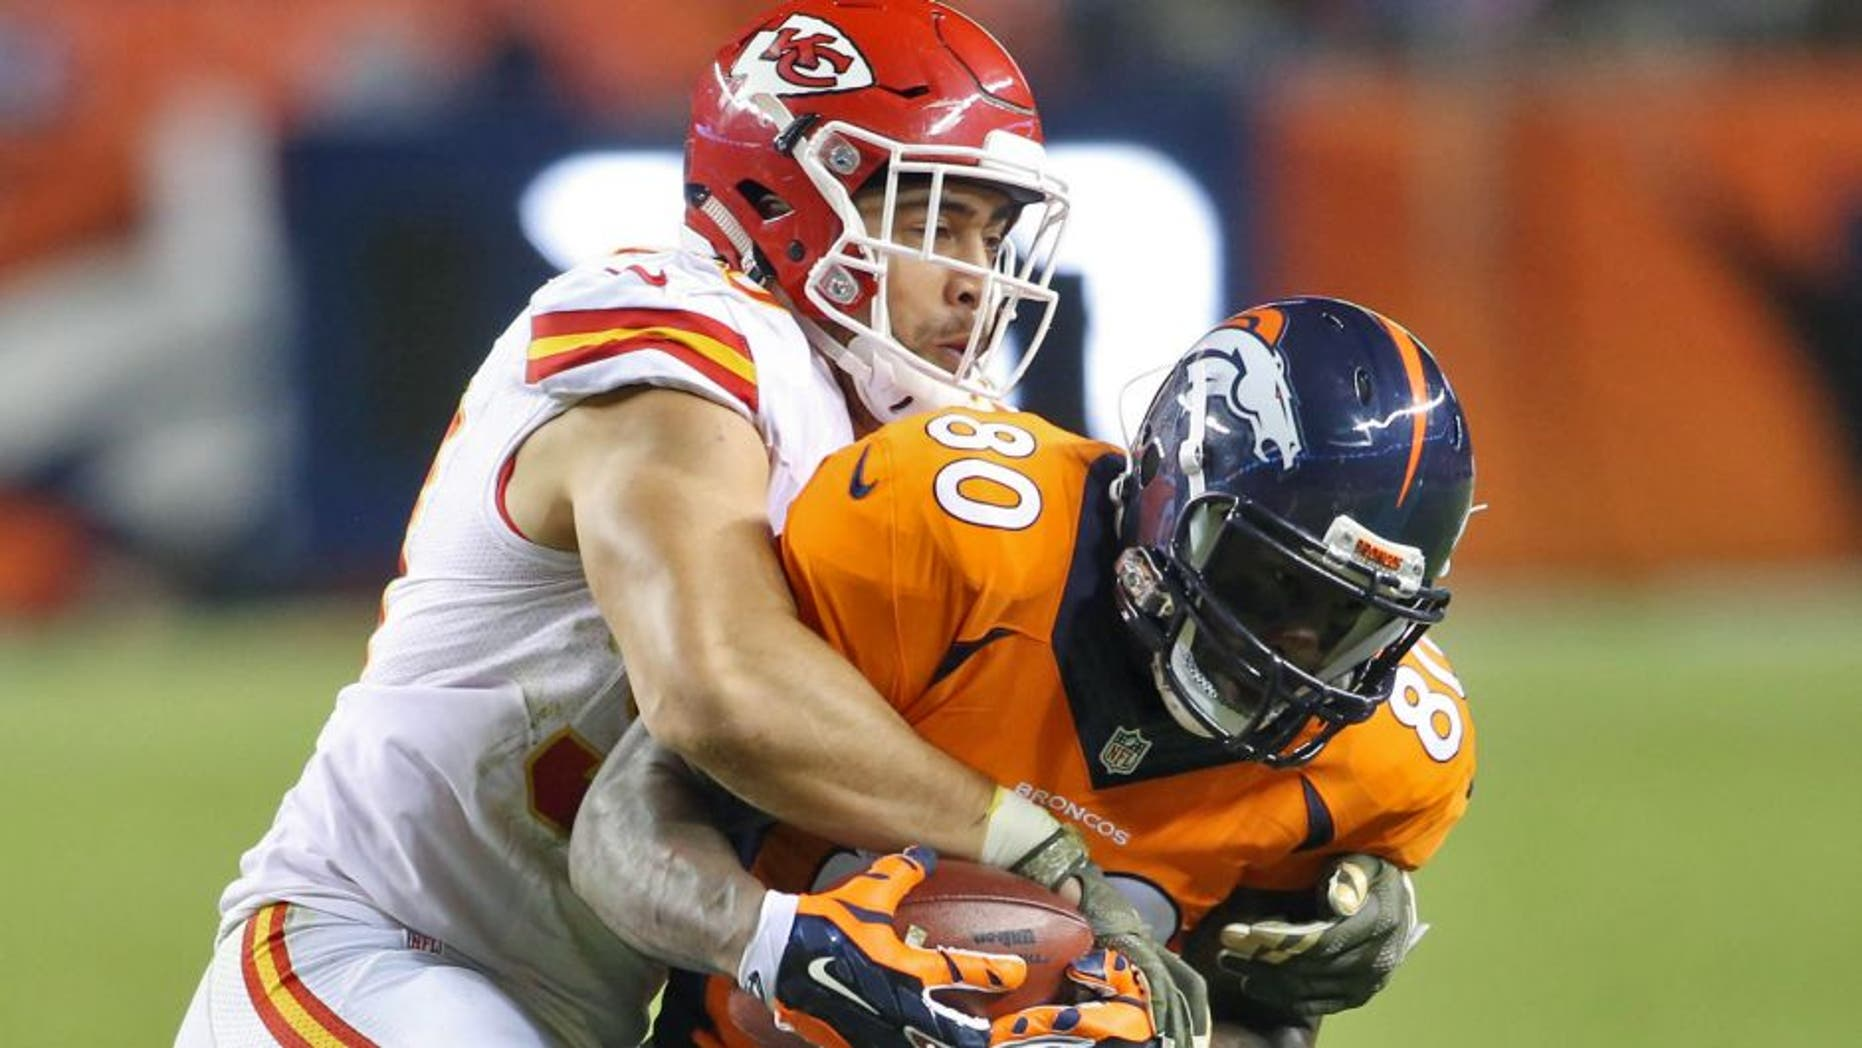 Nov 15, 2015; Denver, CO, USA; Denver Broncos tight end Vernon Davis (80) is brought down by Kansas City Chiefs inside linebacker Josh Mauga (90) during the second half at Sports Authority Field at Mile High. The Chiefs won 29-13. Mandatory Credit: Chris Humphreys-USA TODAY Sports